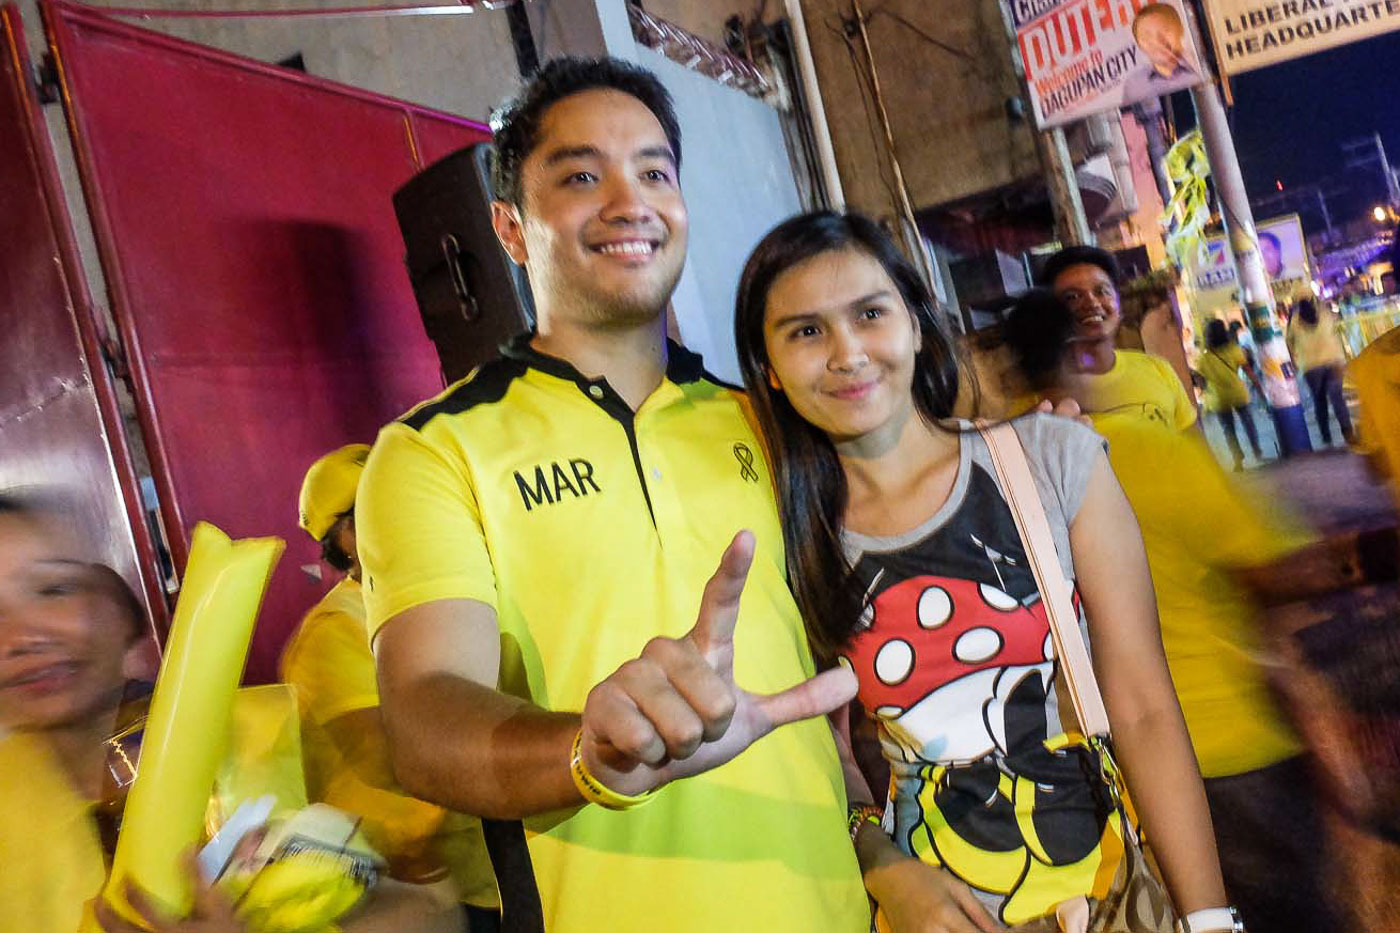 YALE STUDENT. Pao with a supporter in Dagupan City, Pangasinan on April 24. Photo by Alecs Ongcal/Rappler